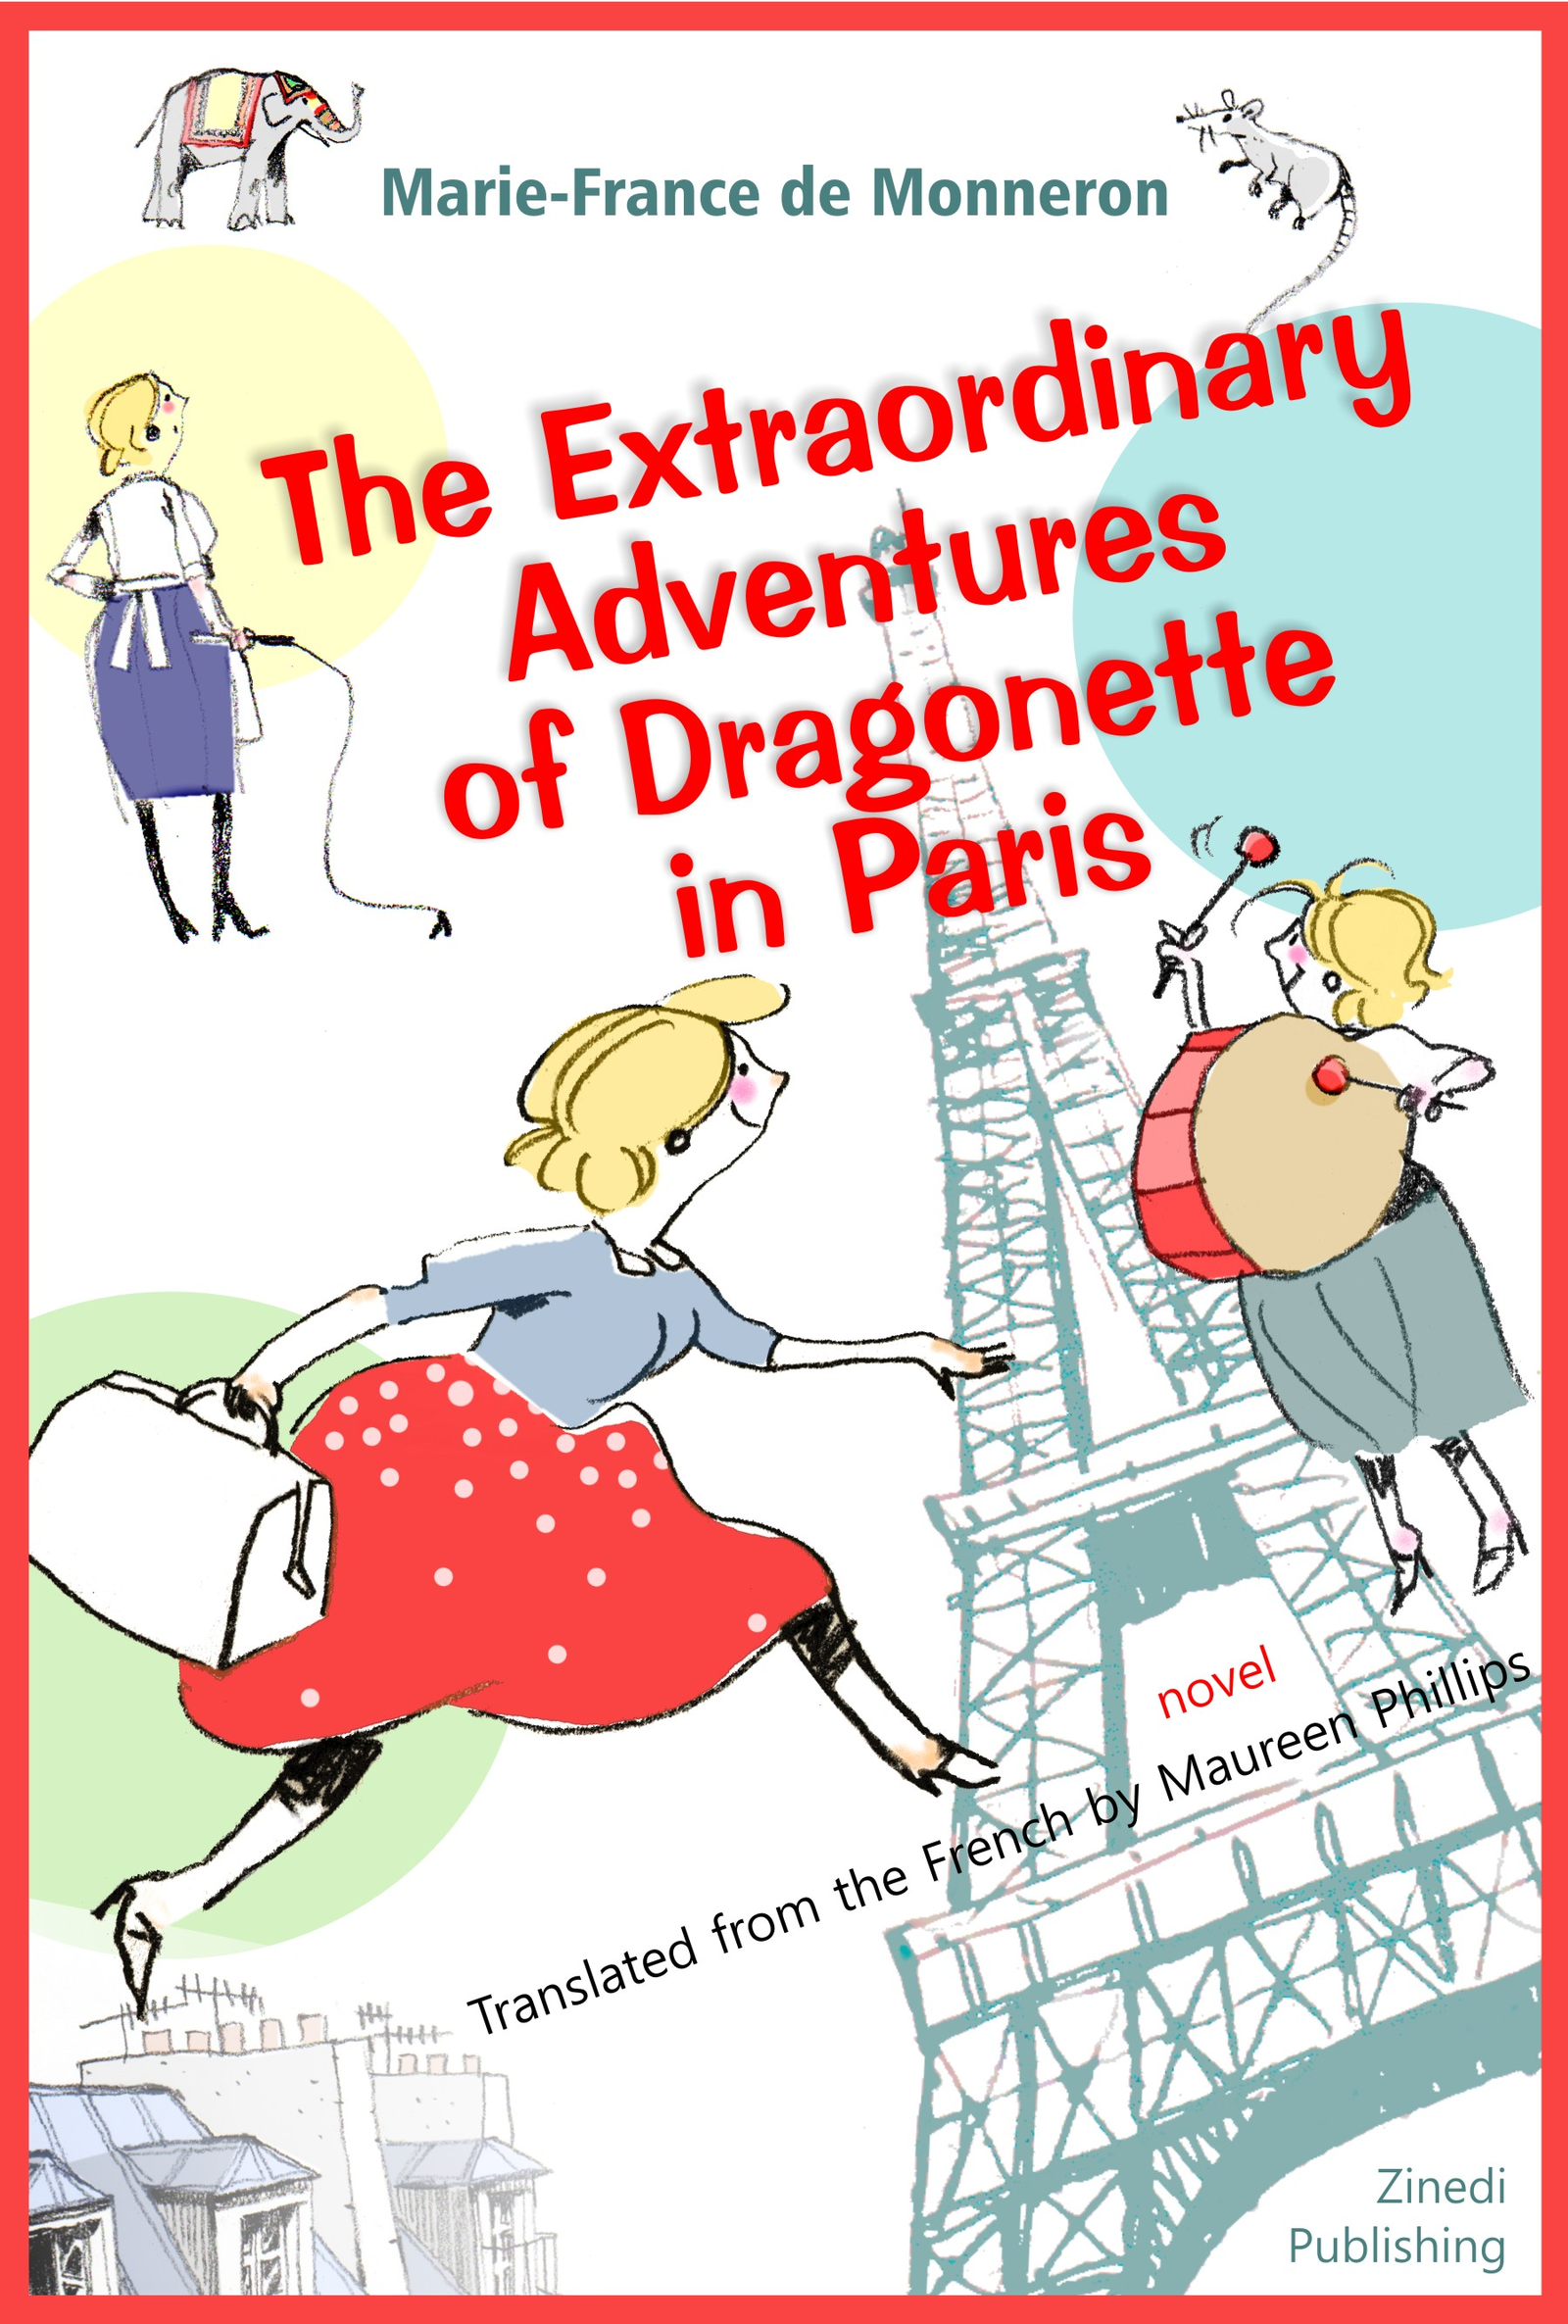 The Extraordinary Adventures of Dragonette in Paris